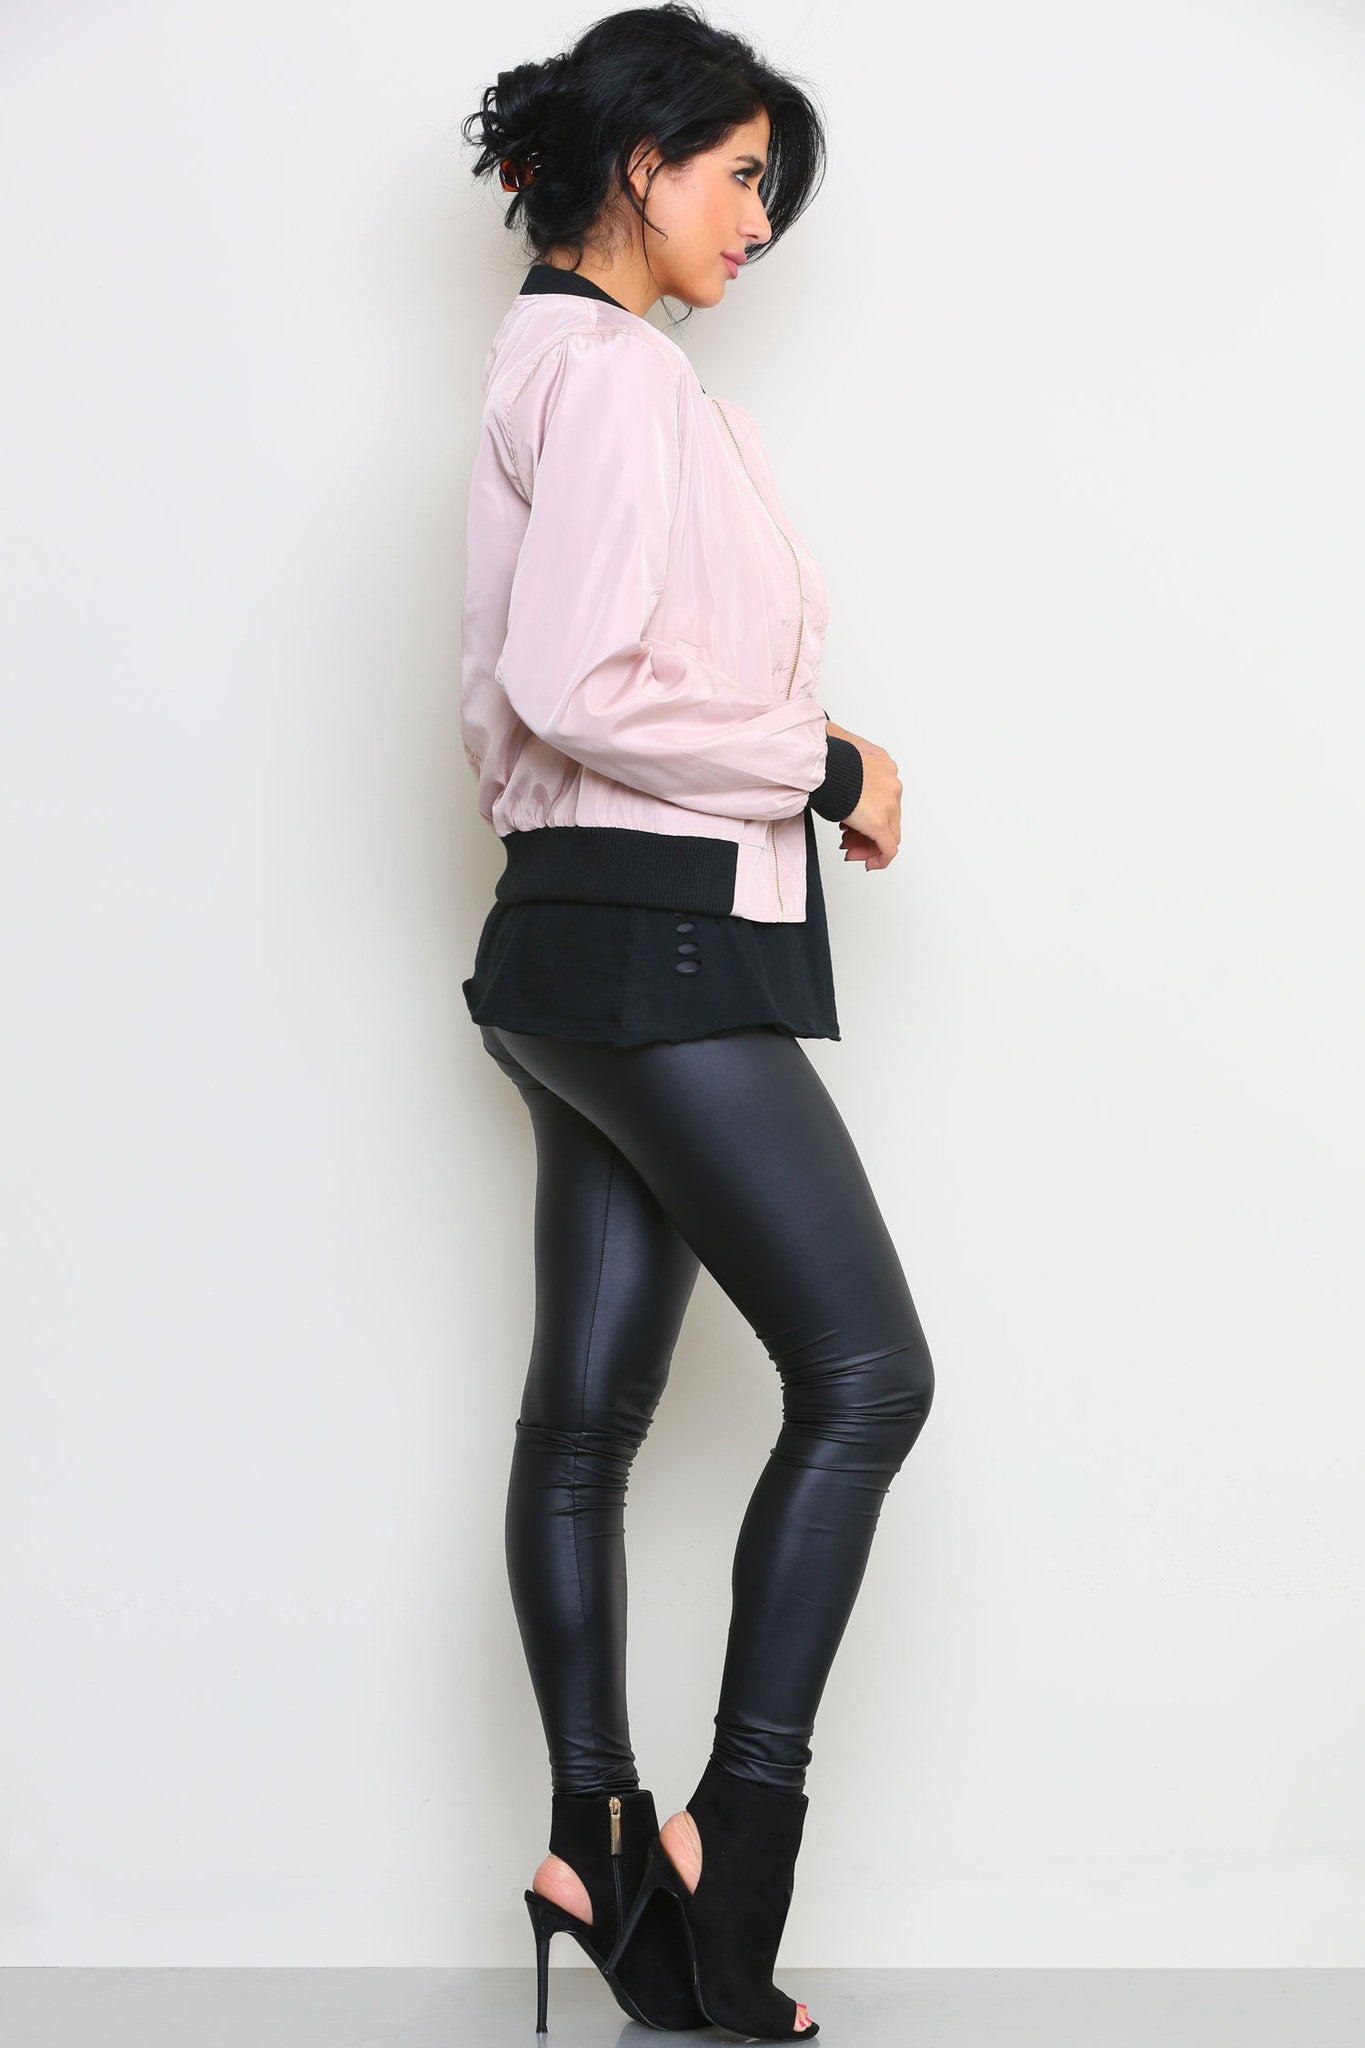 CHRISTINE BOMBER JACKET - Glam Envy - 3